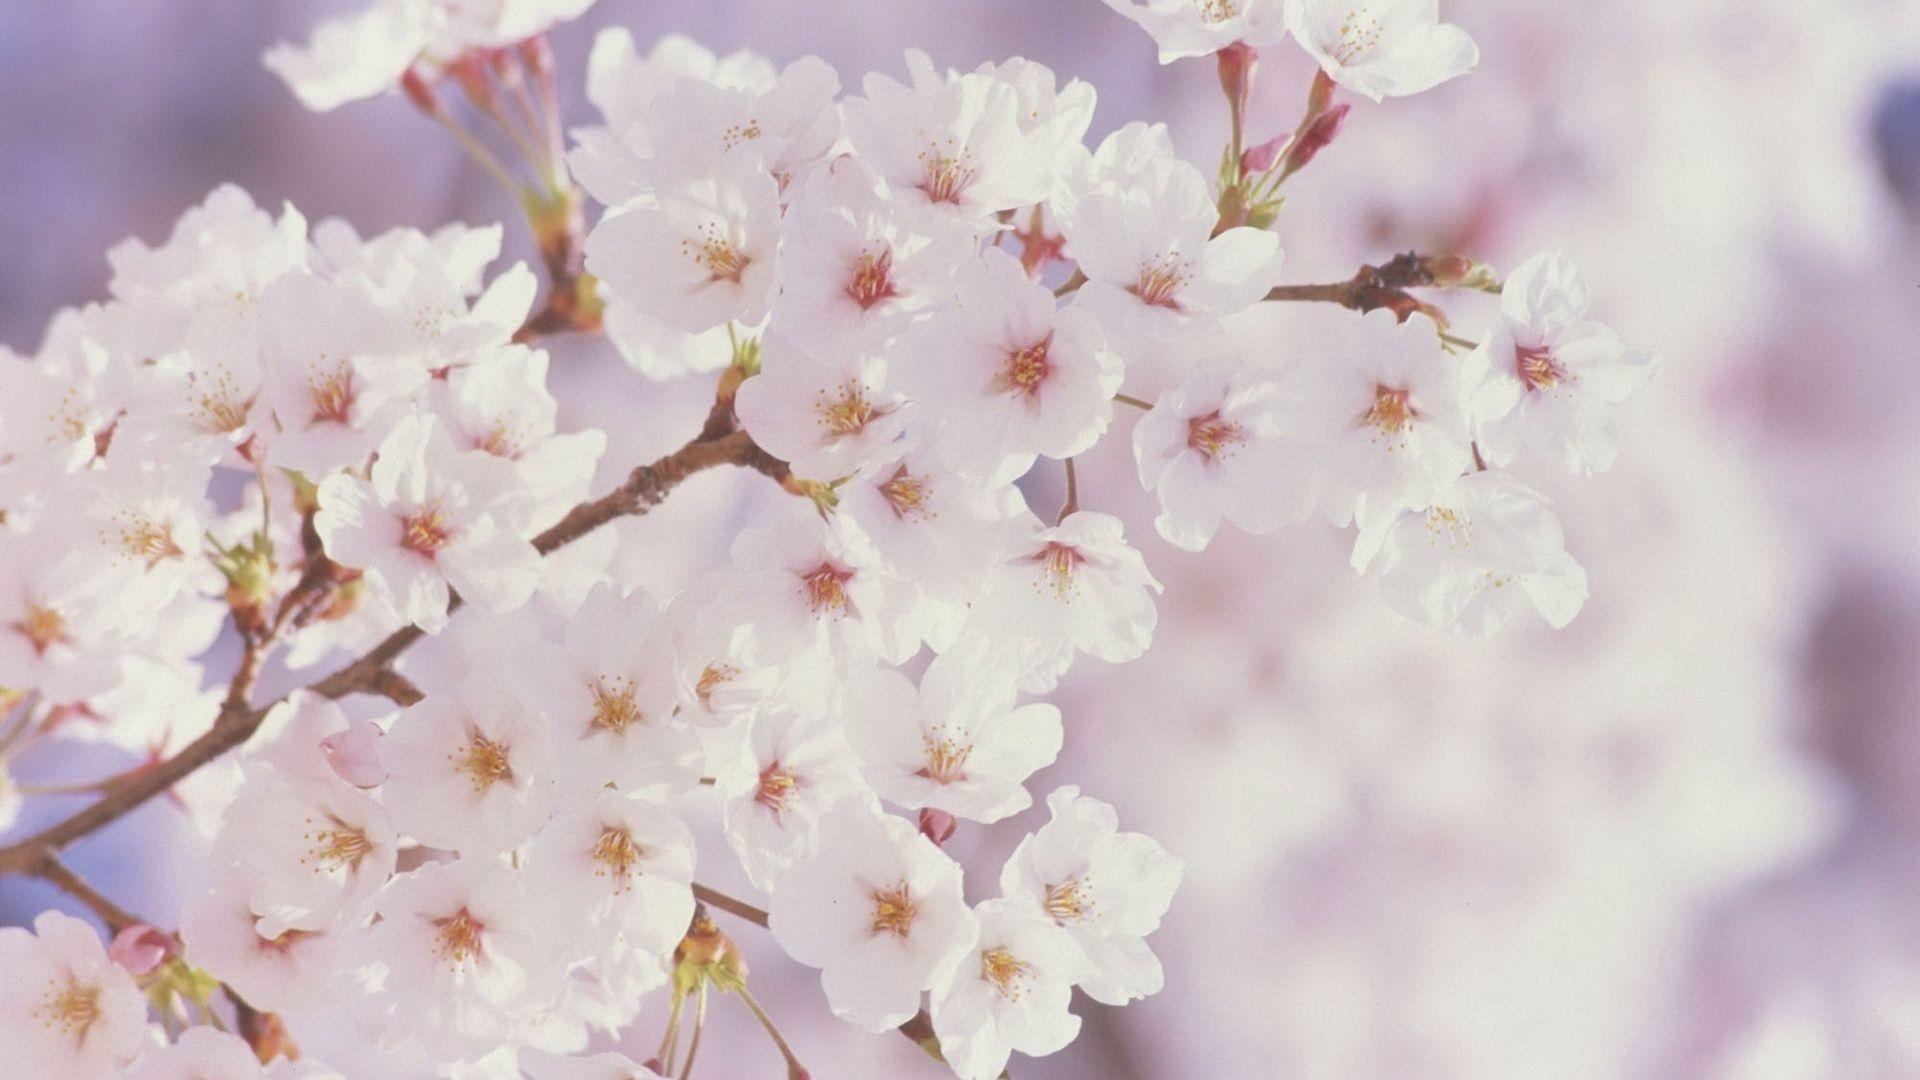 Flowers spring wallpapers wallpaper cave spring flowers desktop wallpaper this wallpaper mightylinksfo